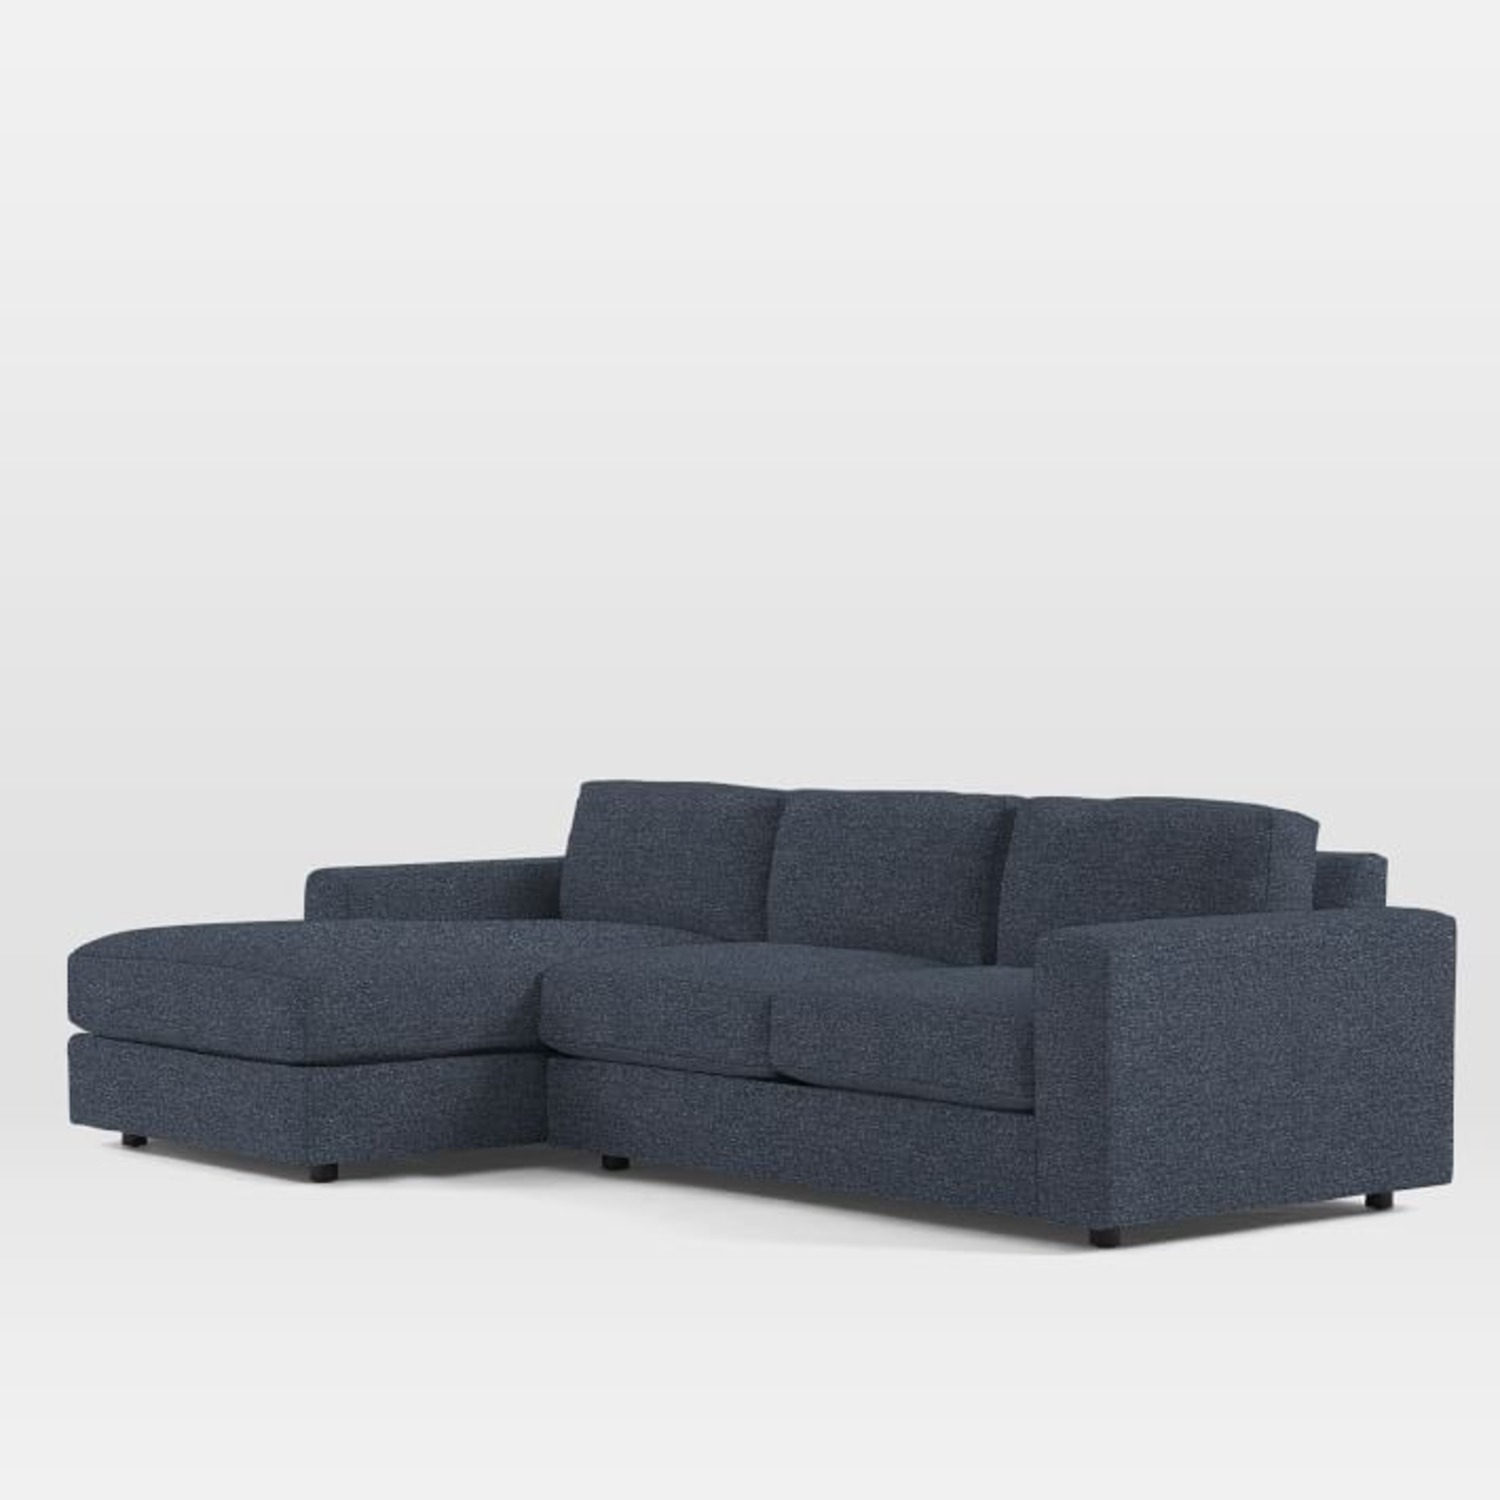 West Elm Urban 2-Piece Chaise Sectional - image-1